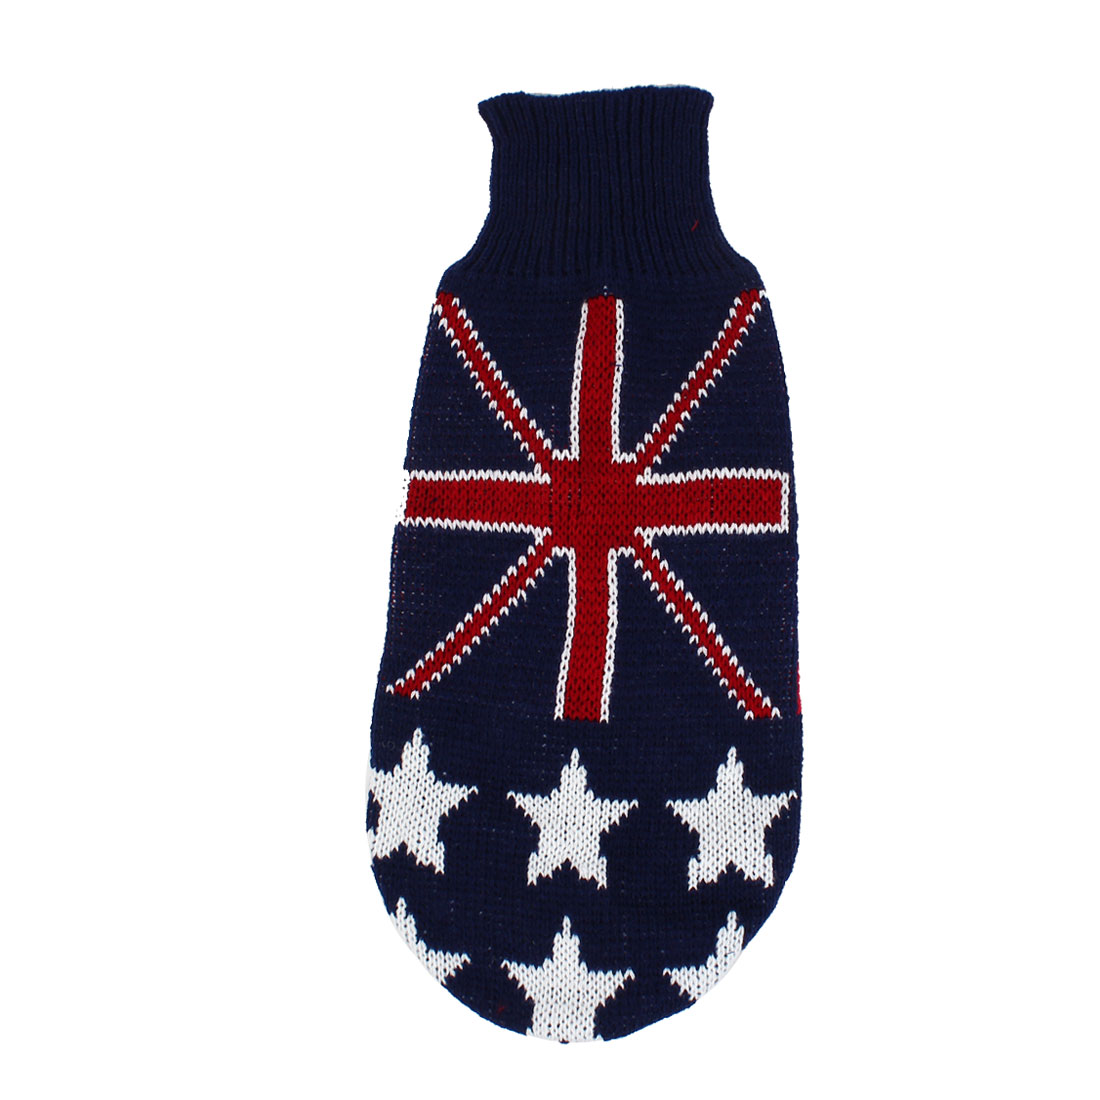 Pet Dog Puppy Flag Print Ribbed Cuff Knitwear Turtleneck Apparel Sweater Dark Blue Red White Size L